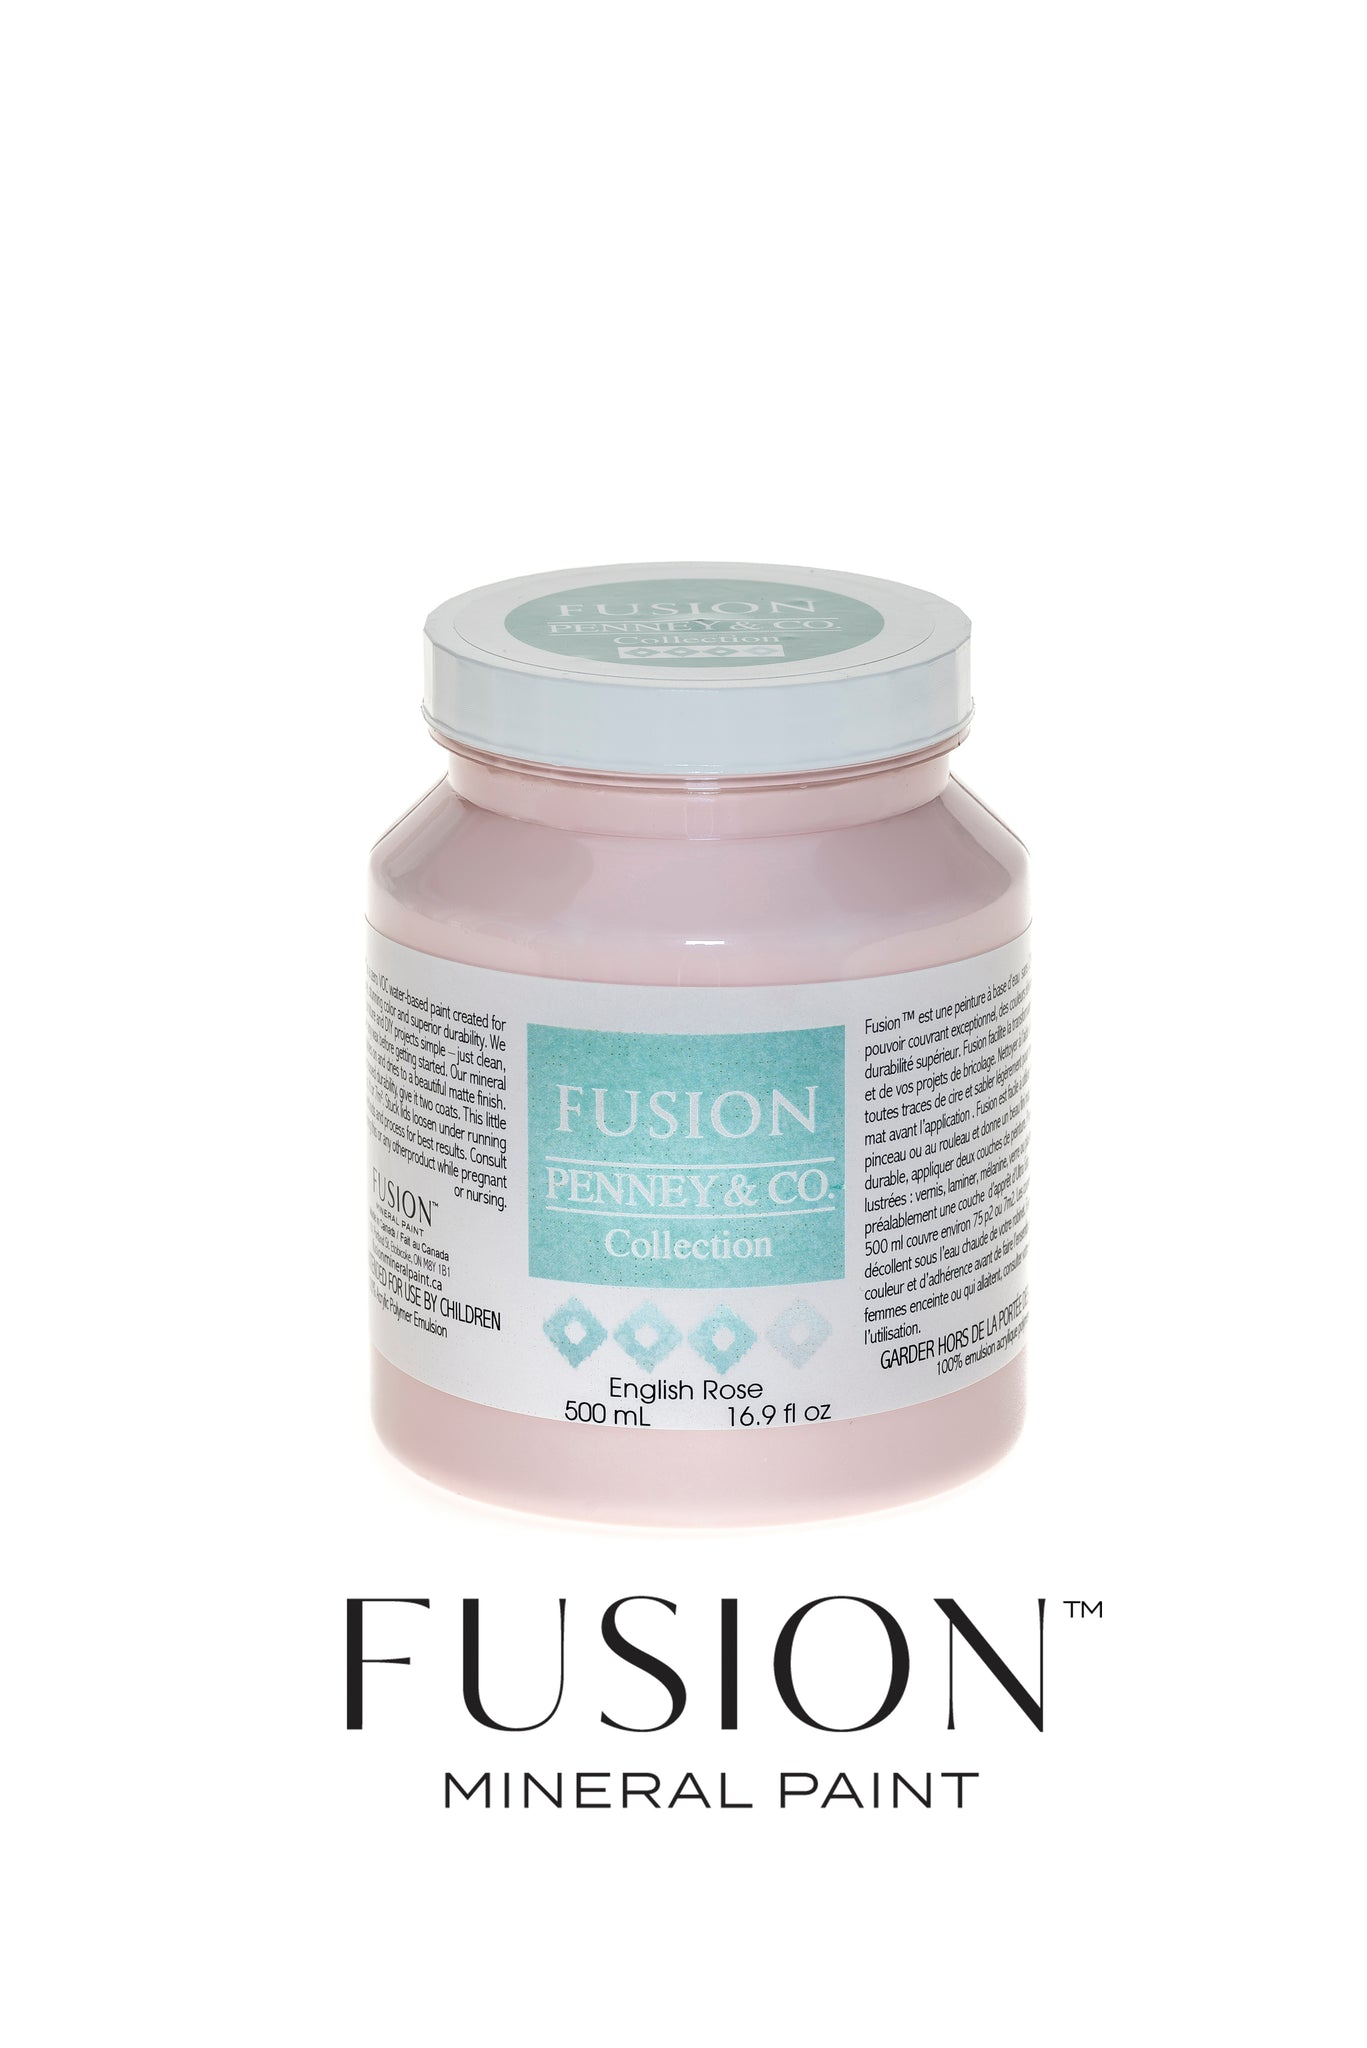 English Rose Fusion Mineral Paint